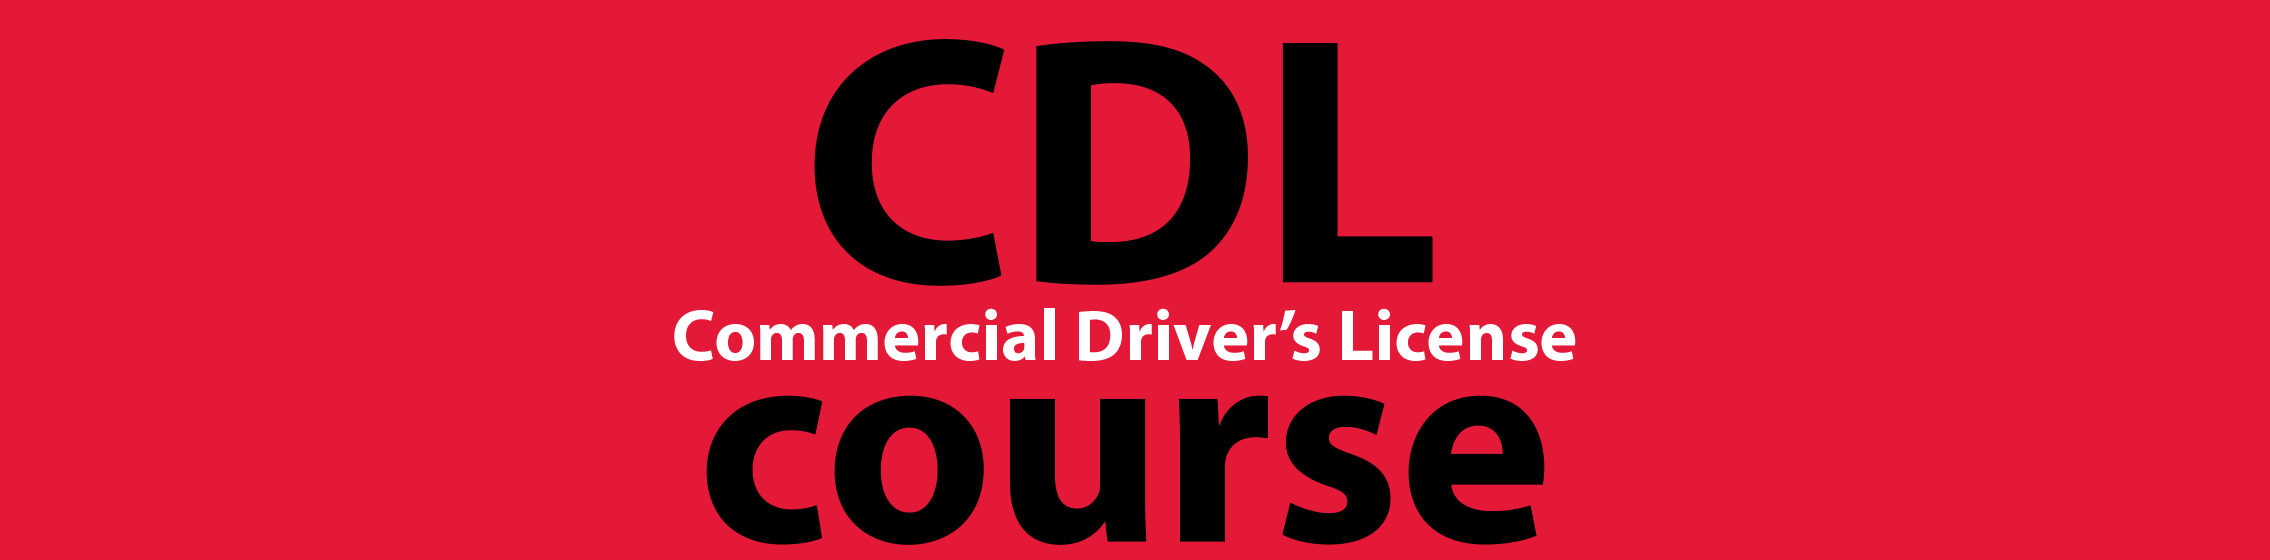 commercial drivers license course